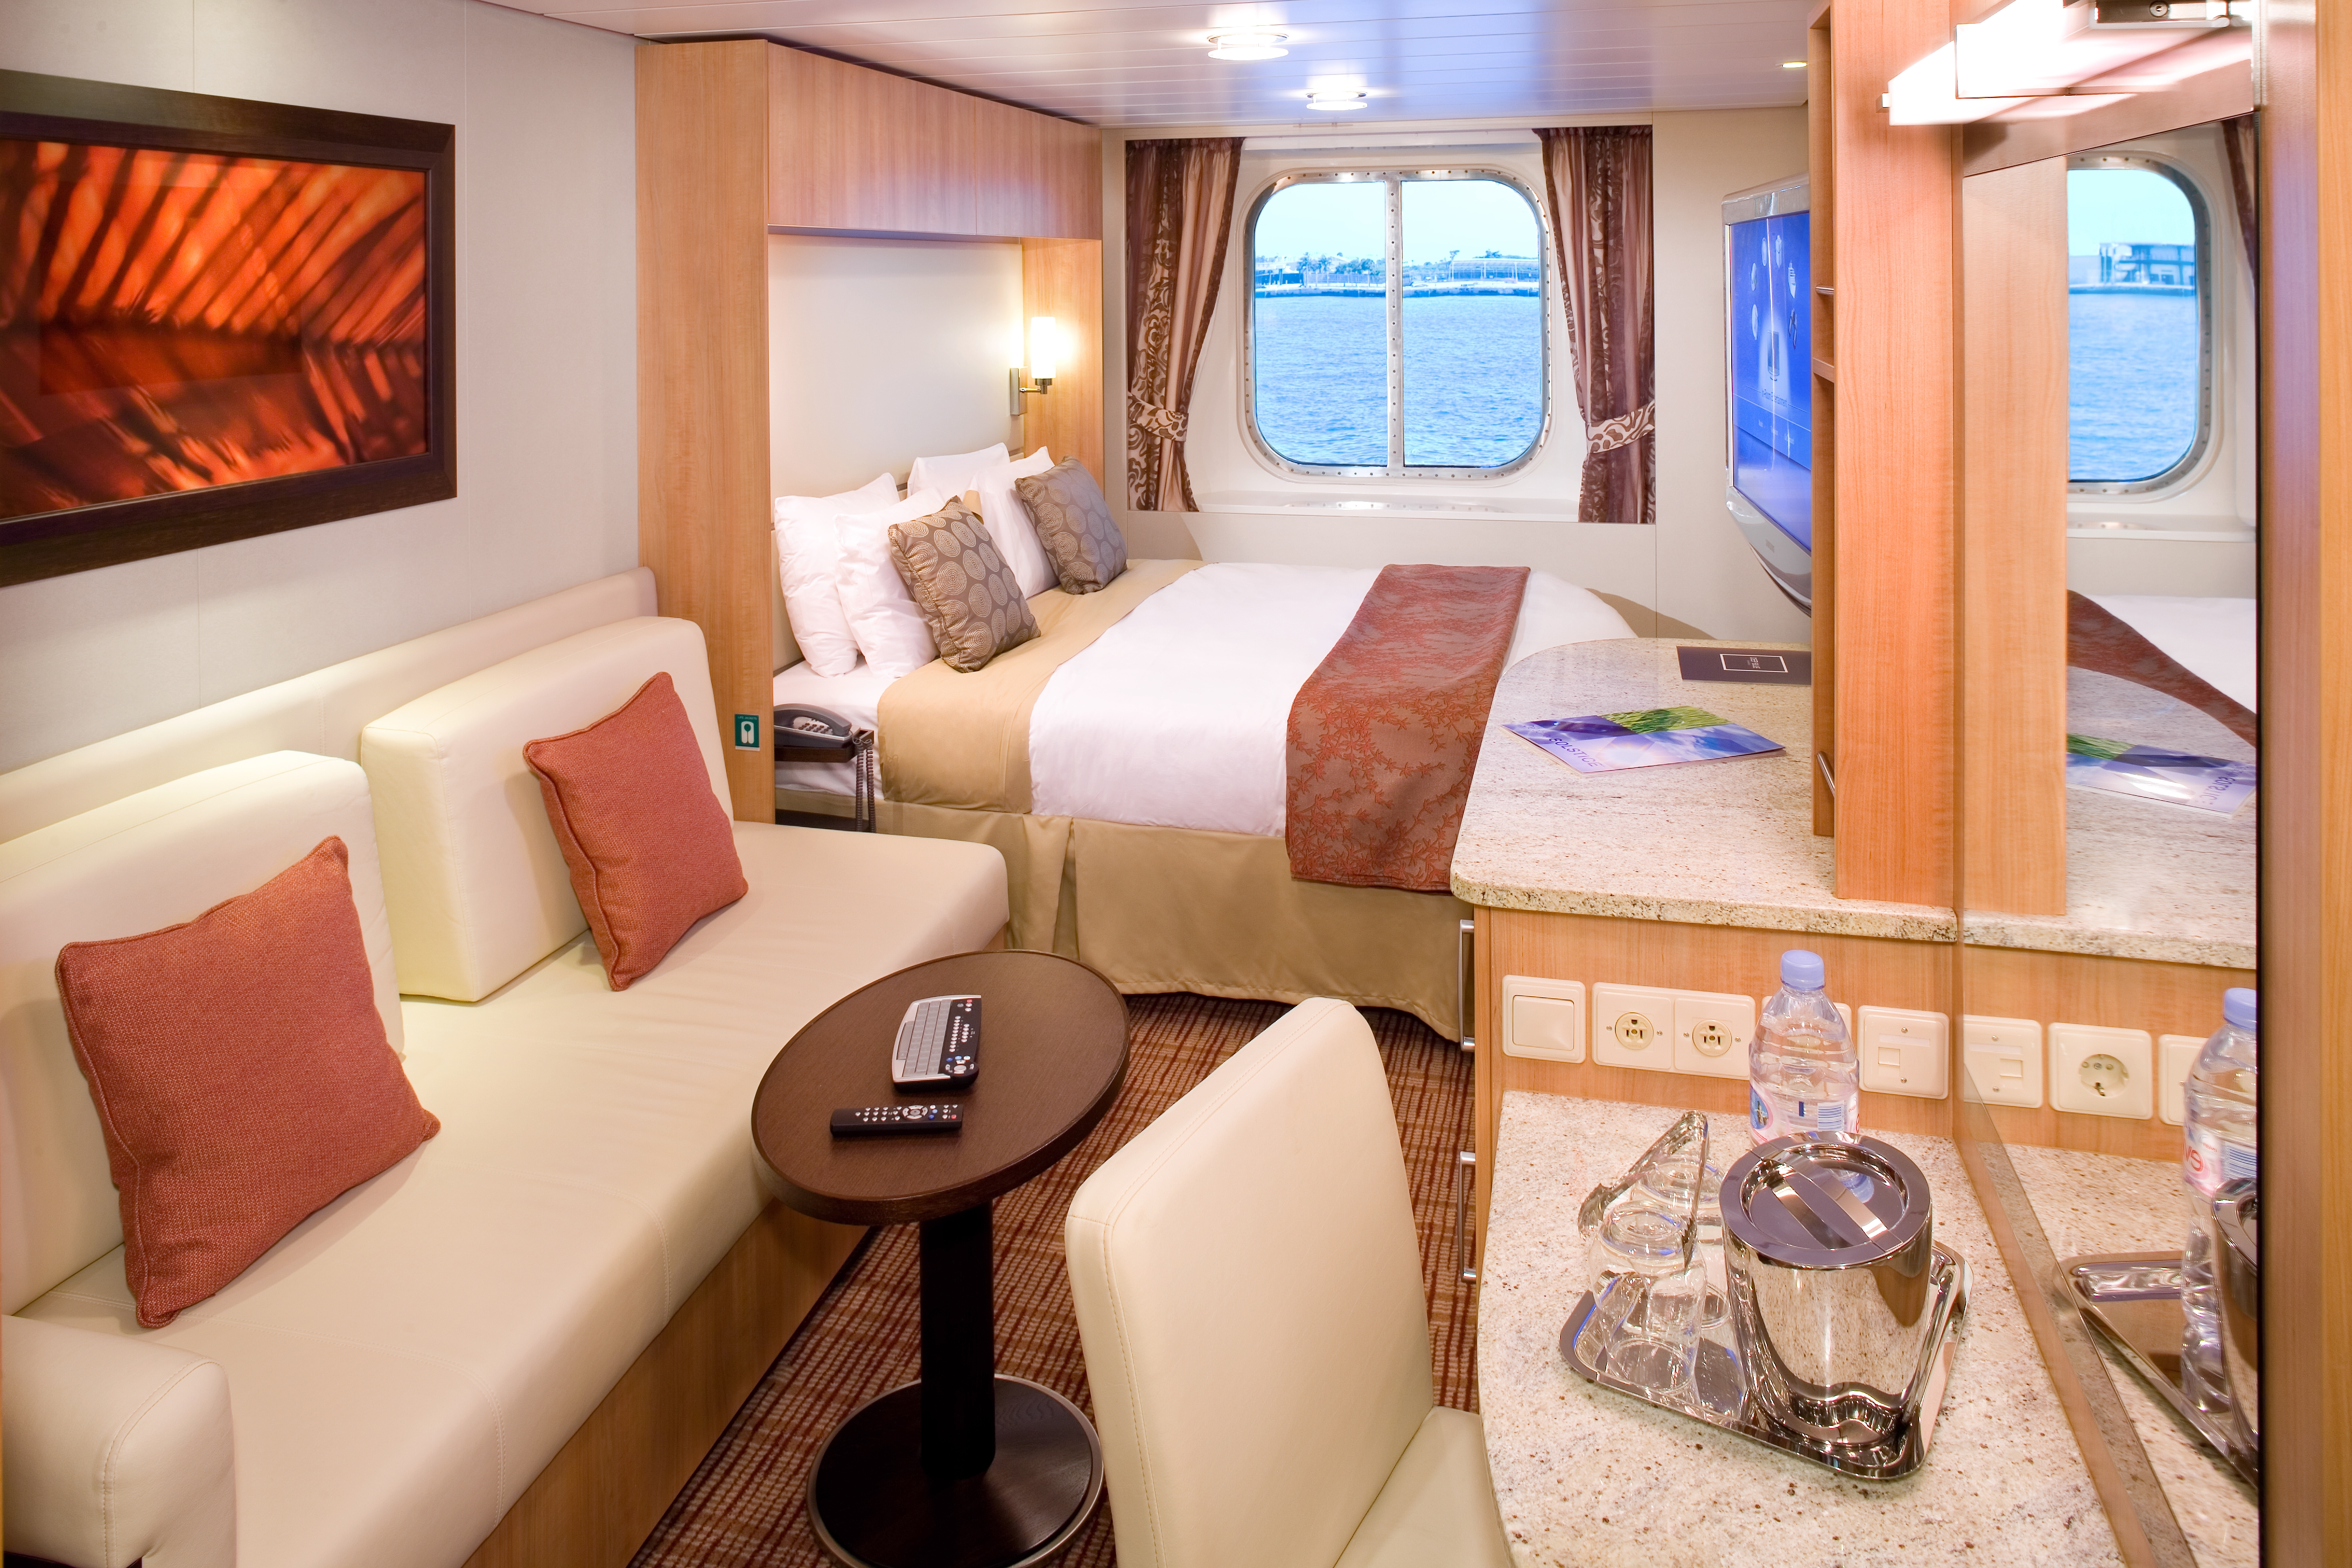 Celebrity Cruises Celebrity Solstice Accommodation Ocean View Stateroom.jpg